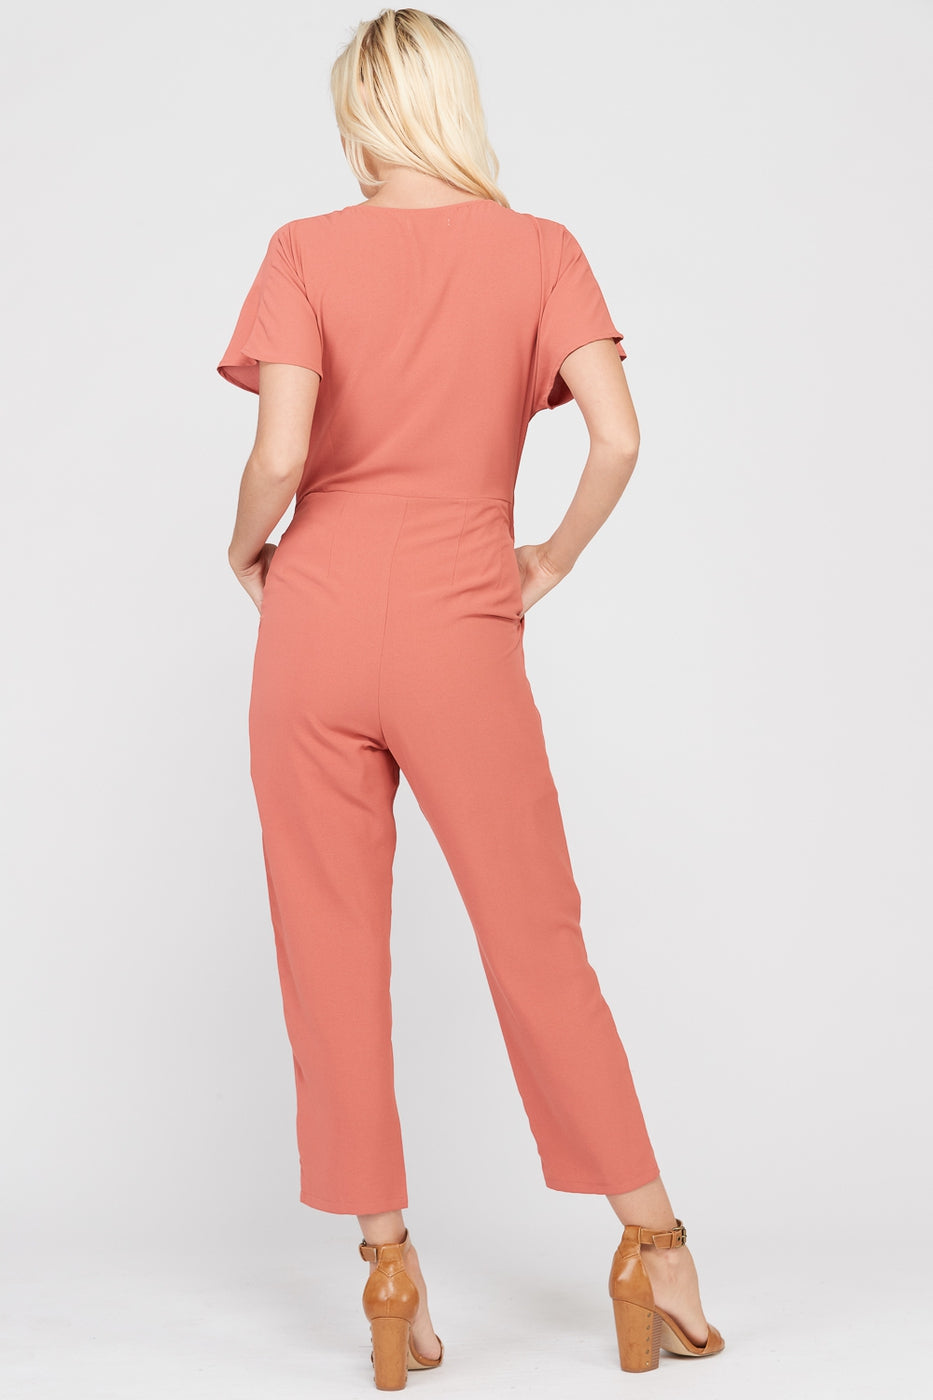 Maggie Short Sleeve Jumpsuit With Front Tie In Marsala Siin Bees